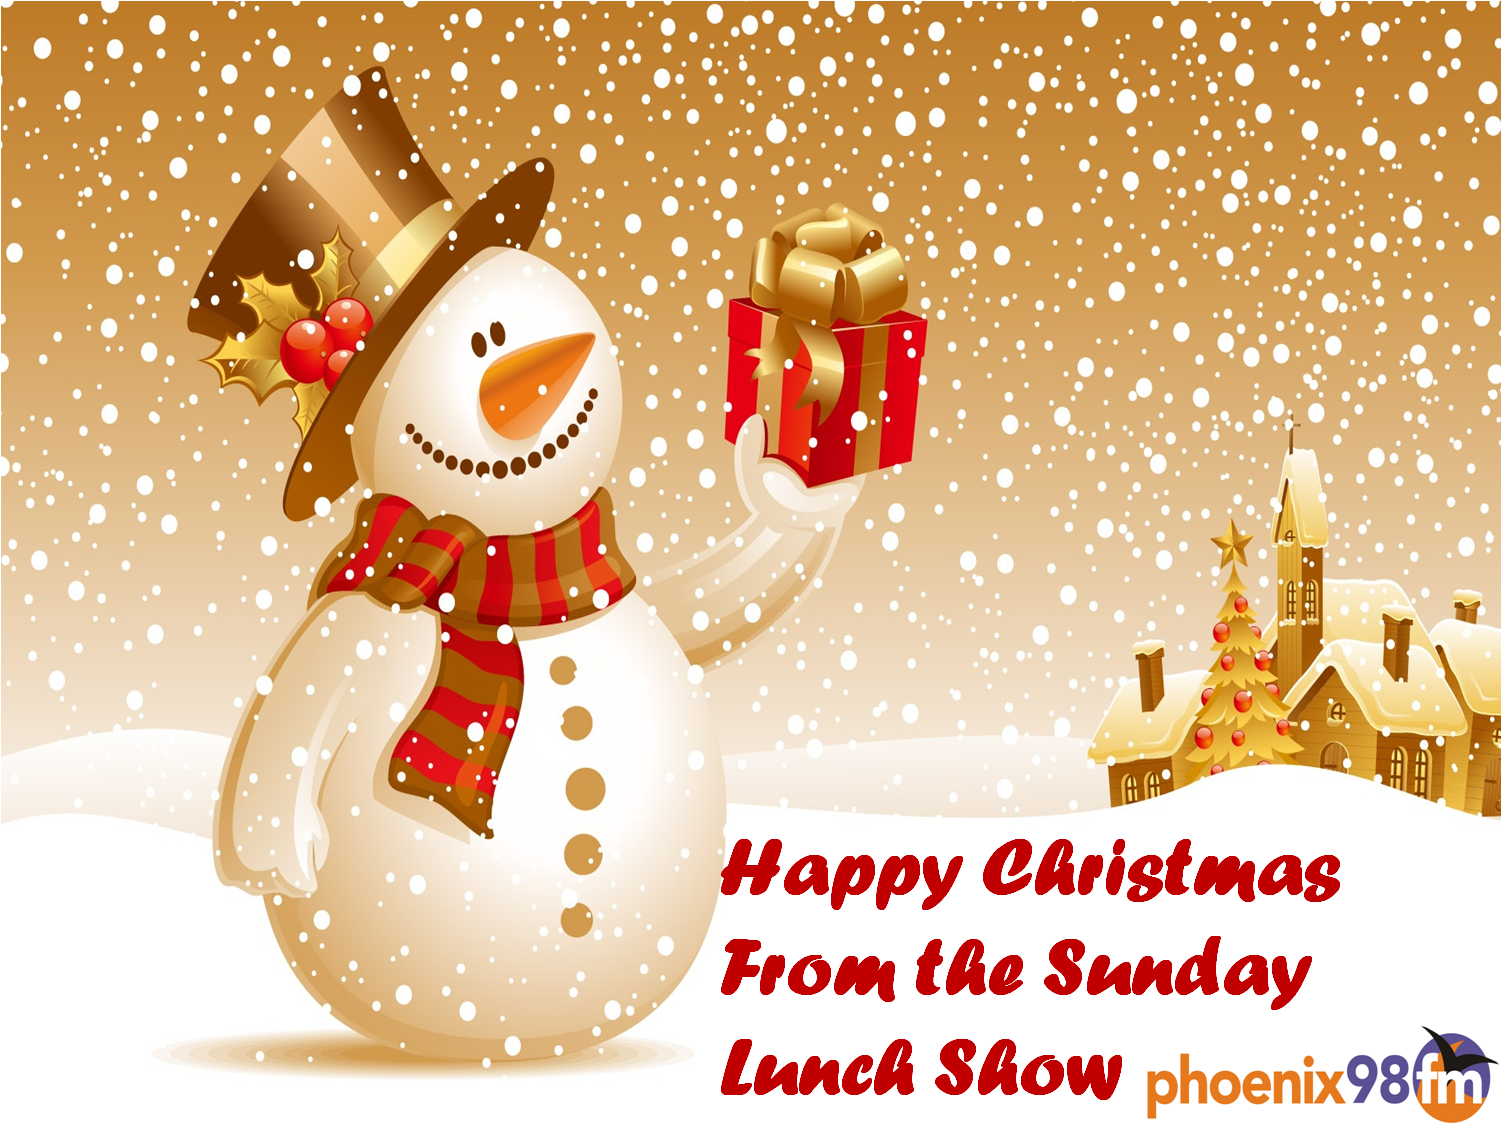 here is wishing each and everyone a merry christmas and happy new year - Christmas Sunday